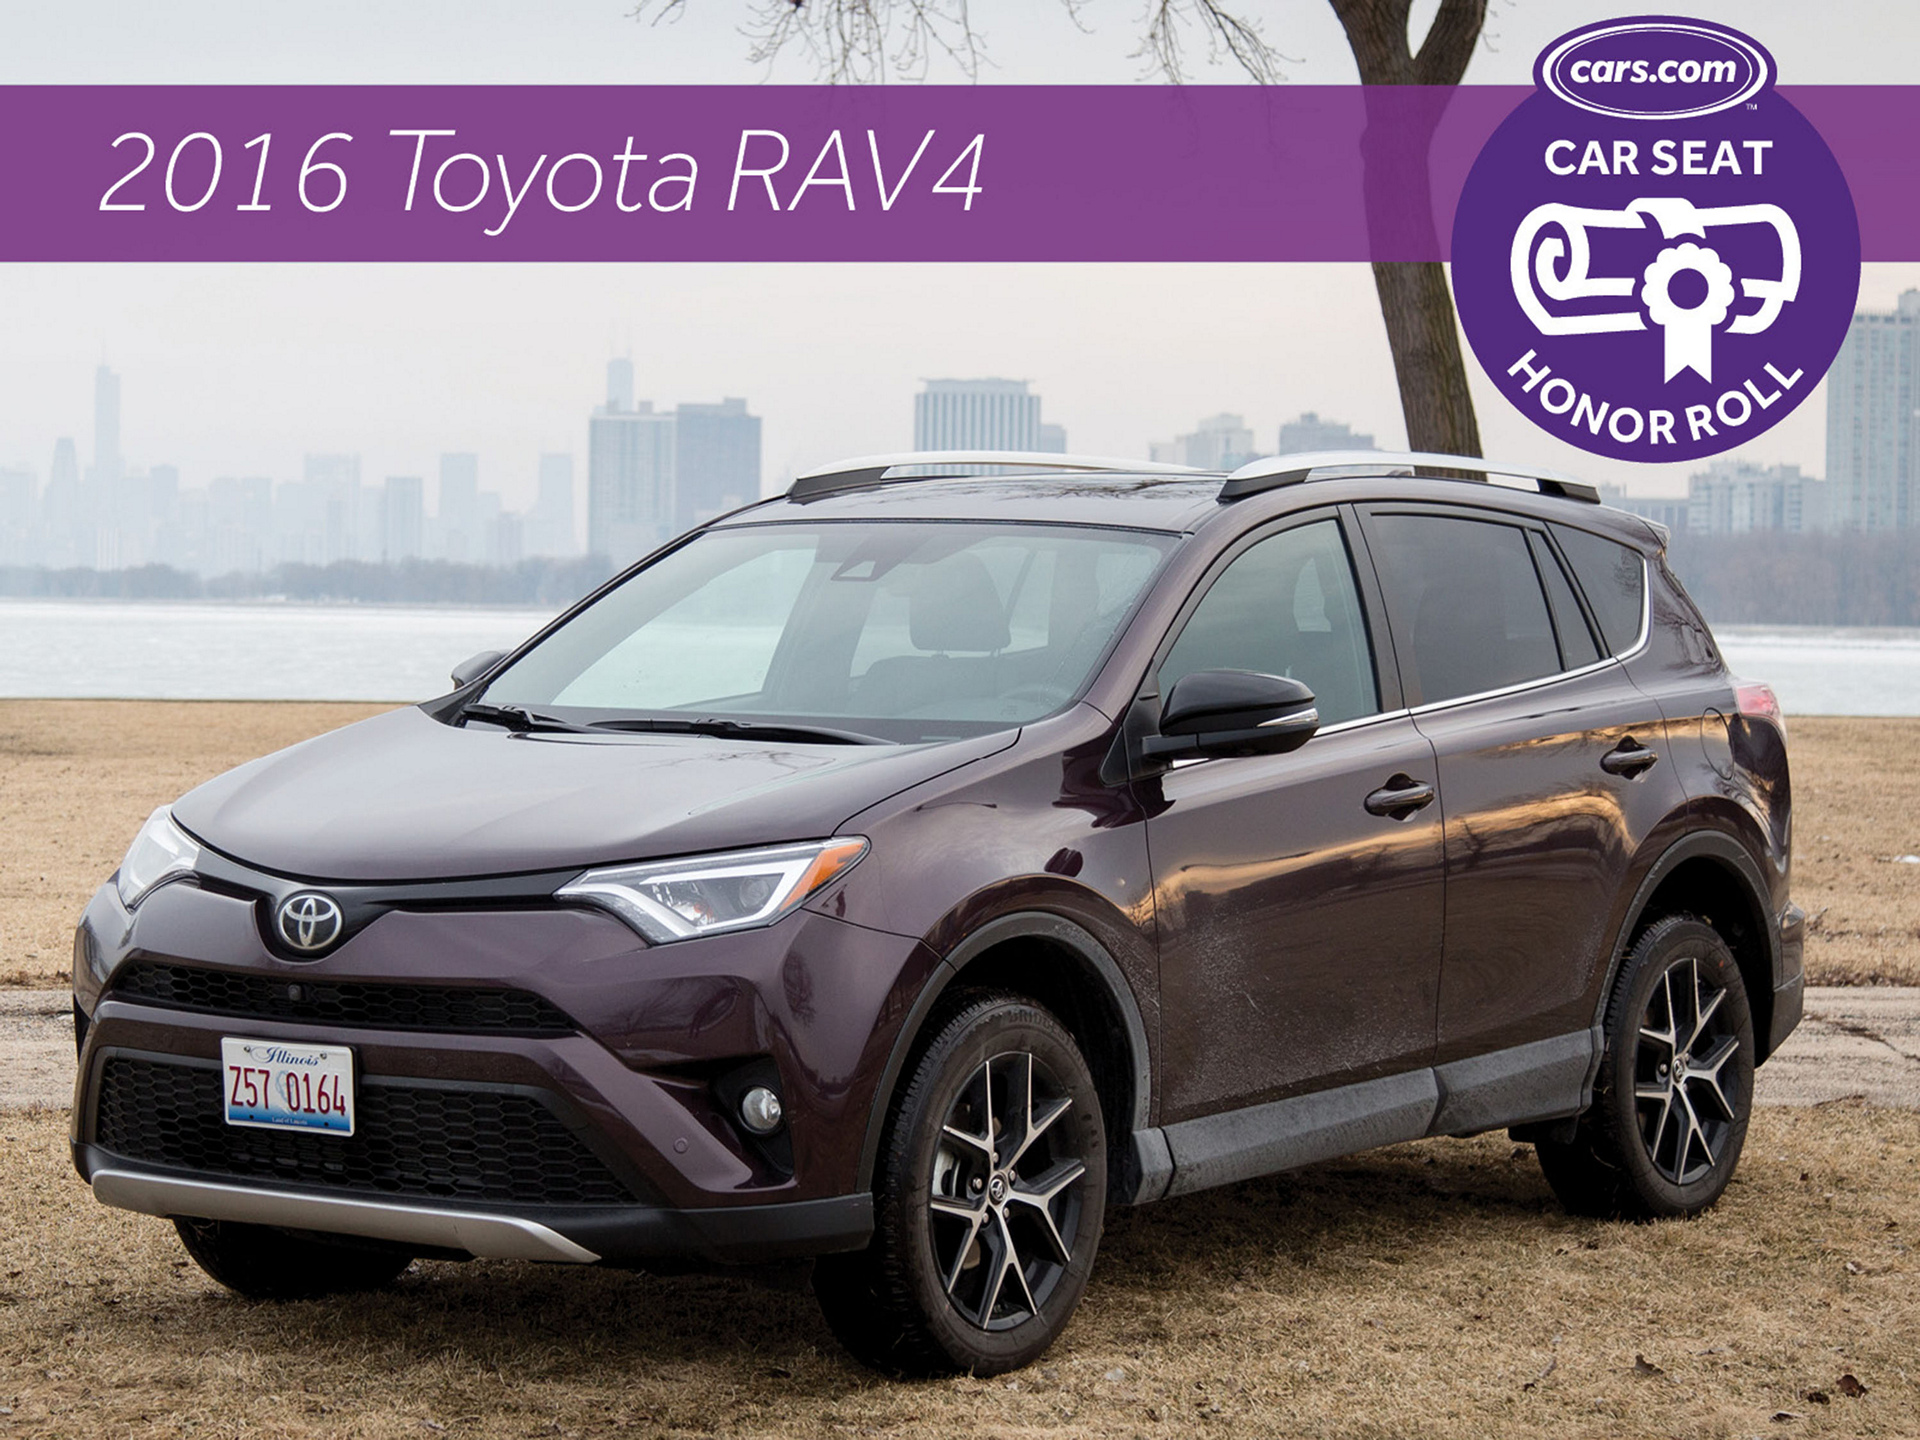 RAV4 'Top of the Class' for Car Seat Installation © Toyota Motor Corporation